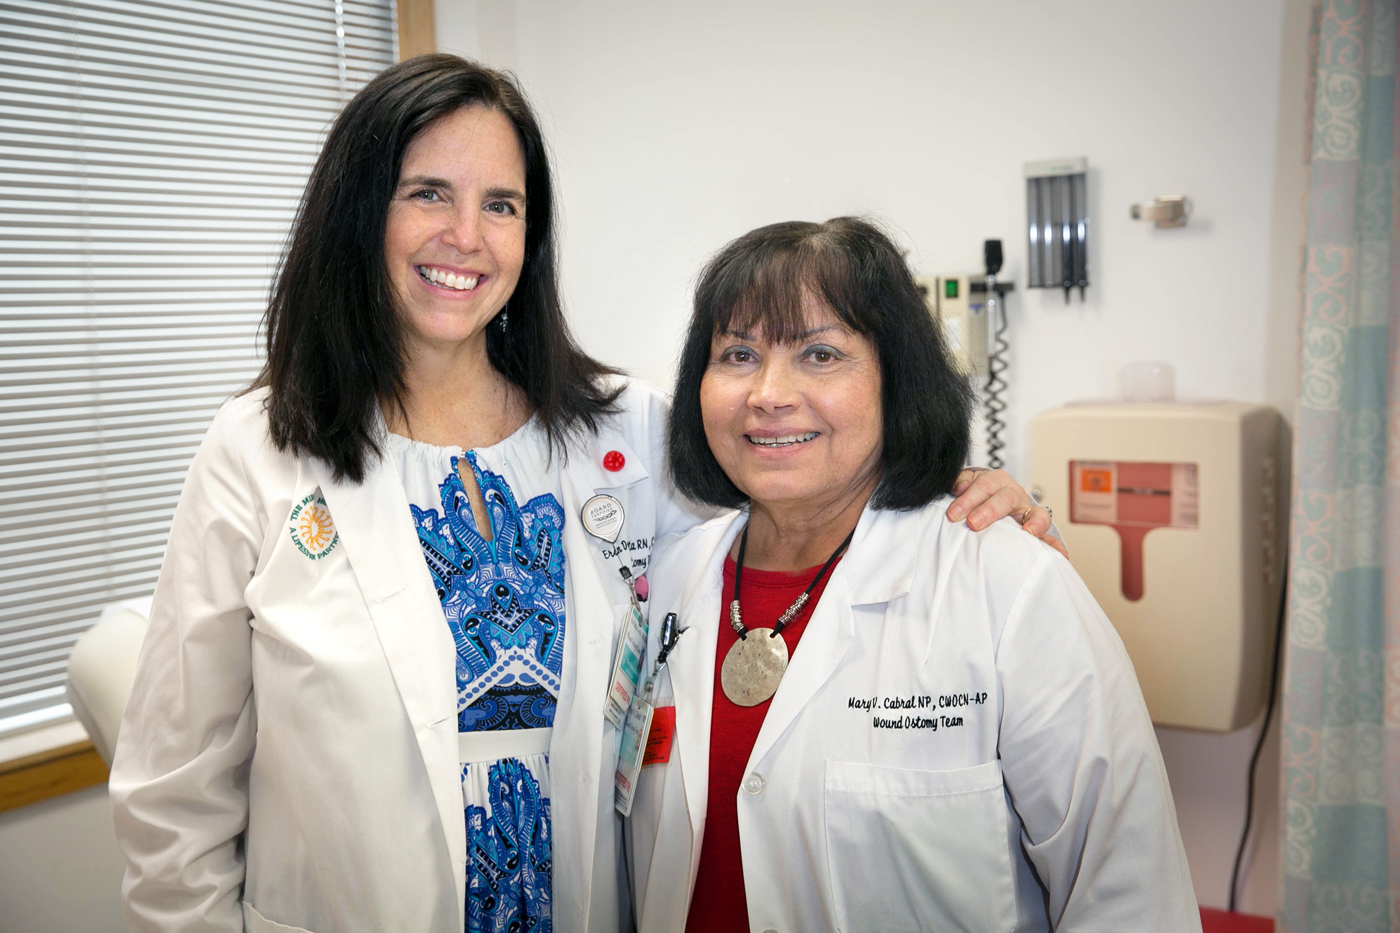 Erin DellaGrotta, RN, left, and Mary Cabral, CNP, right, care for patients at the Ostomy Center